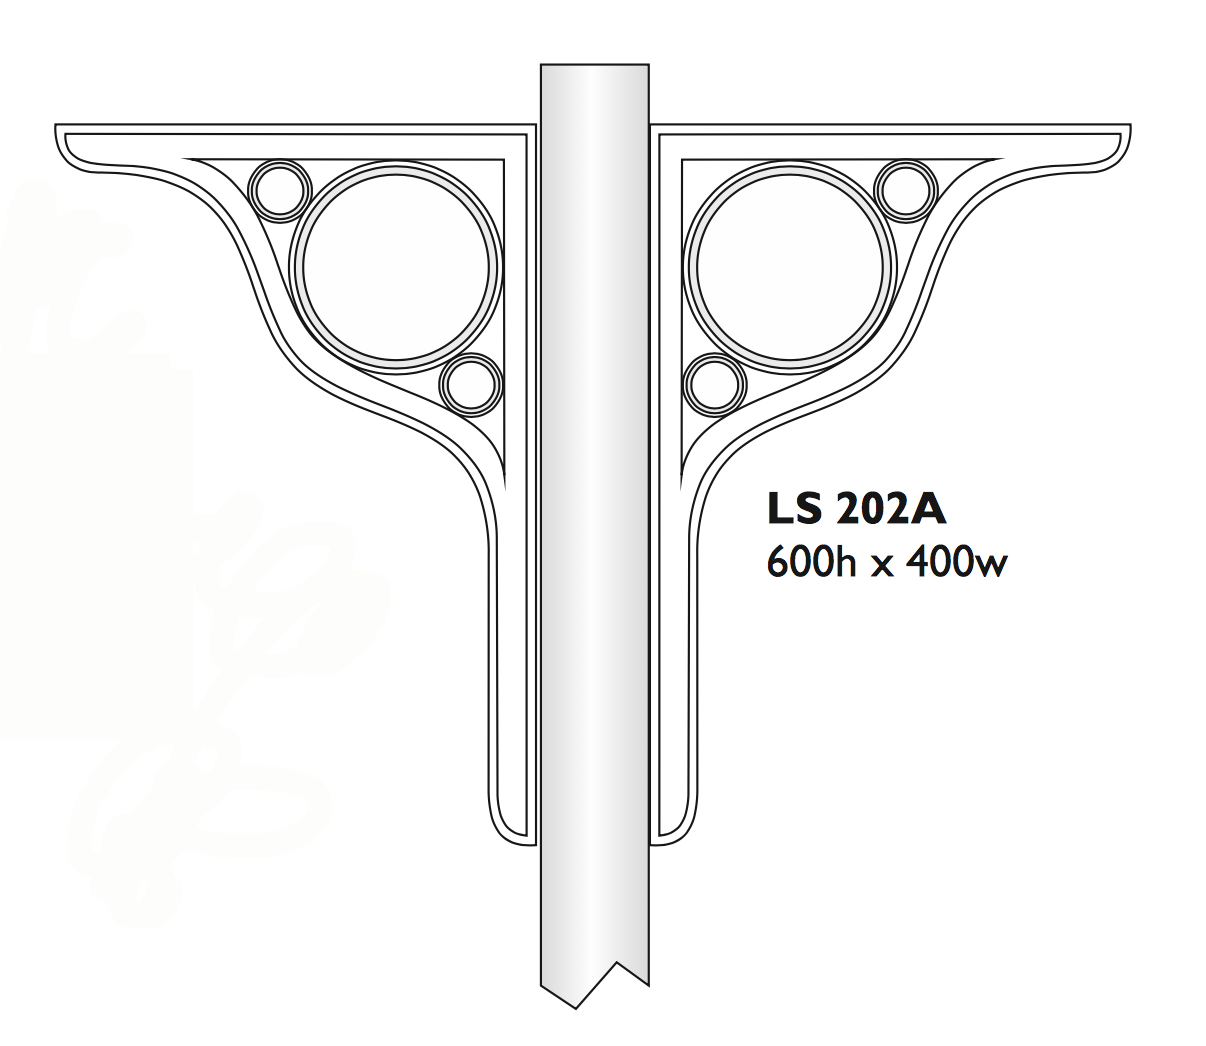 Roof or canopy support bracket - LS 202A